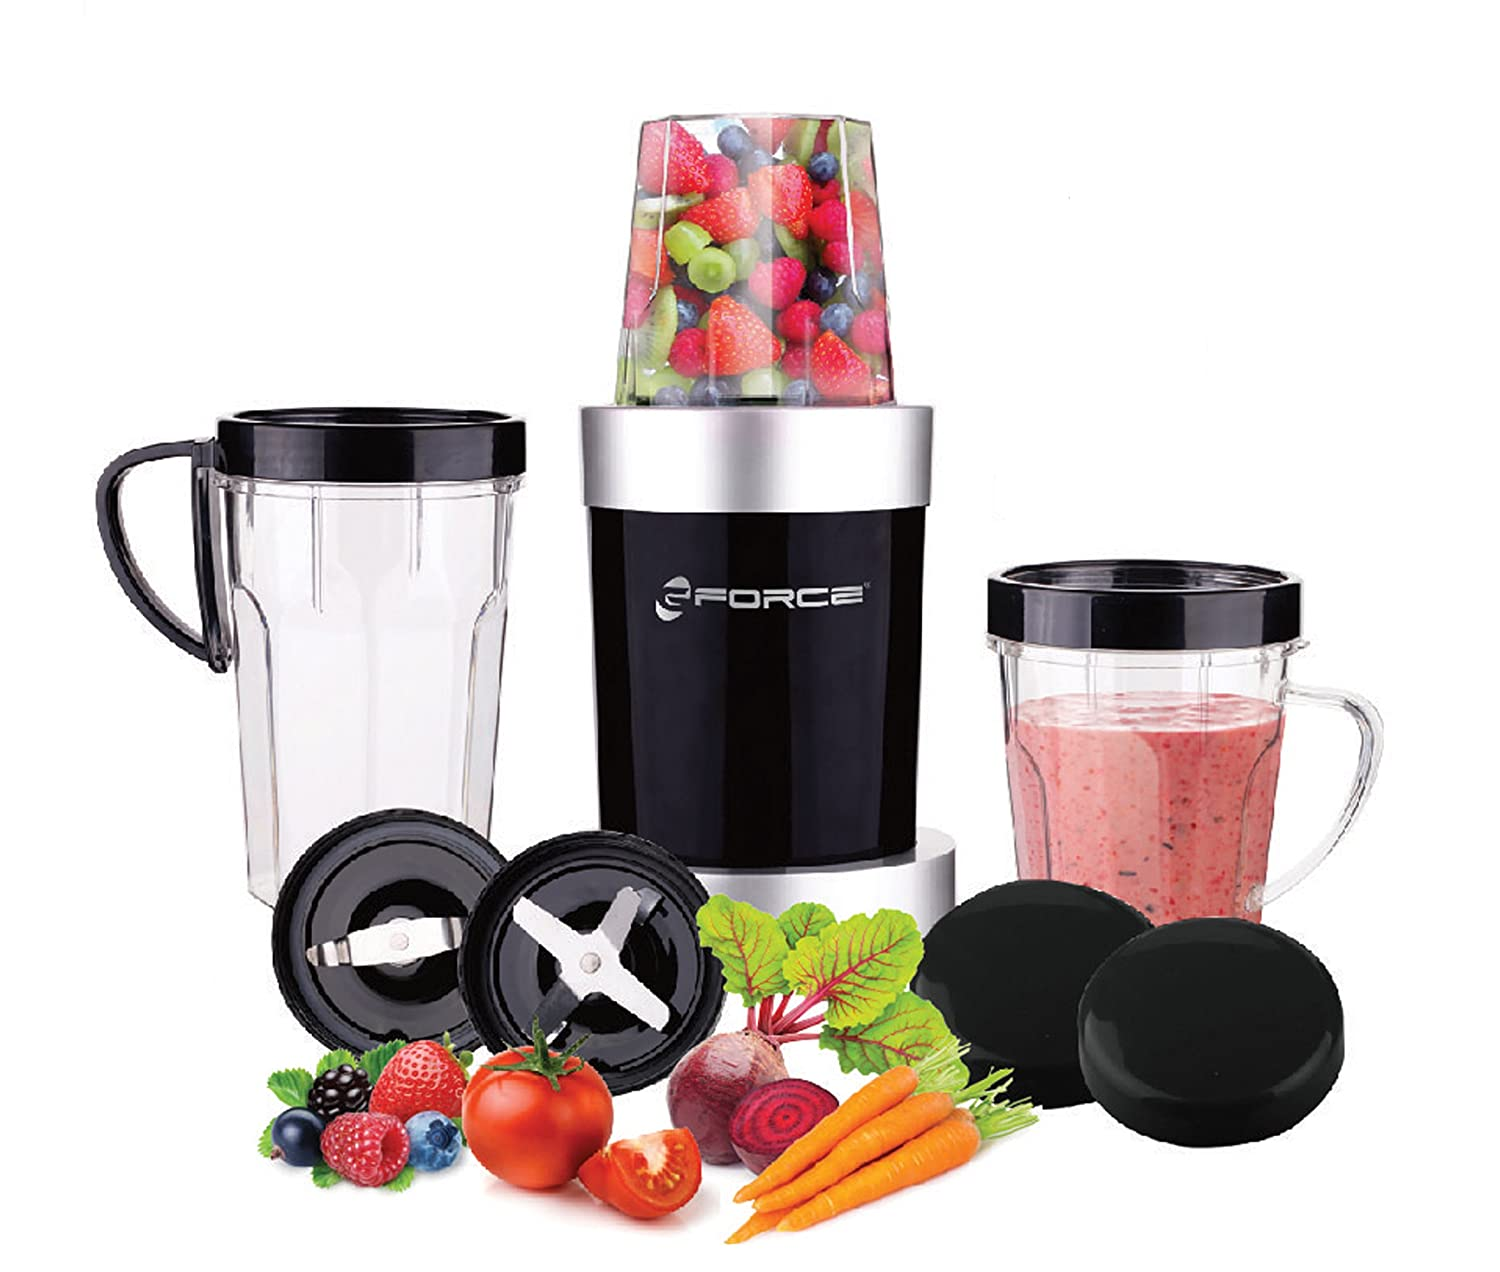 GForce Multi-Function 600W Power Mini Blender, 10 Piece Set With Travel Lids and Cups